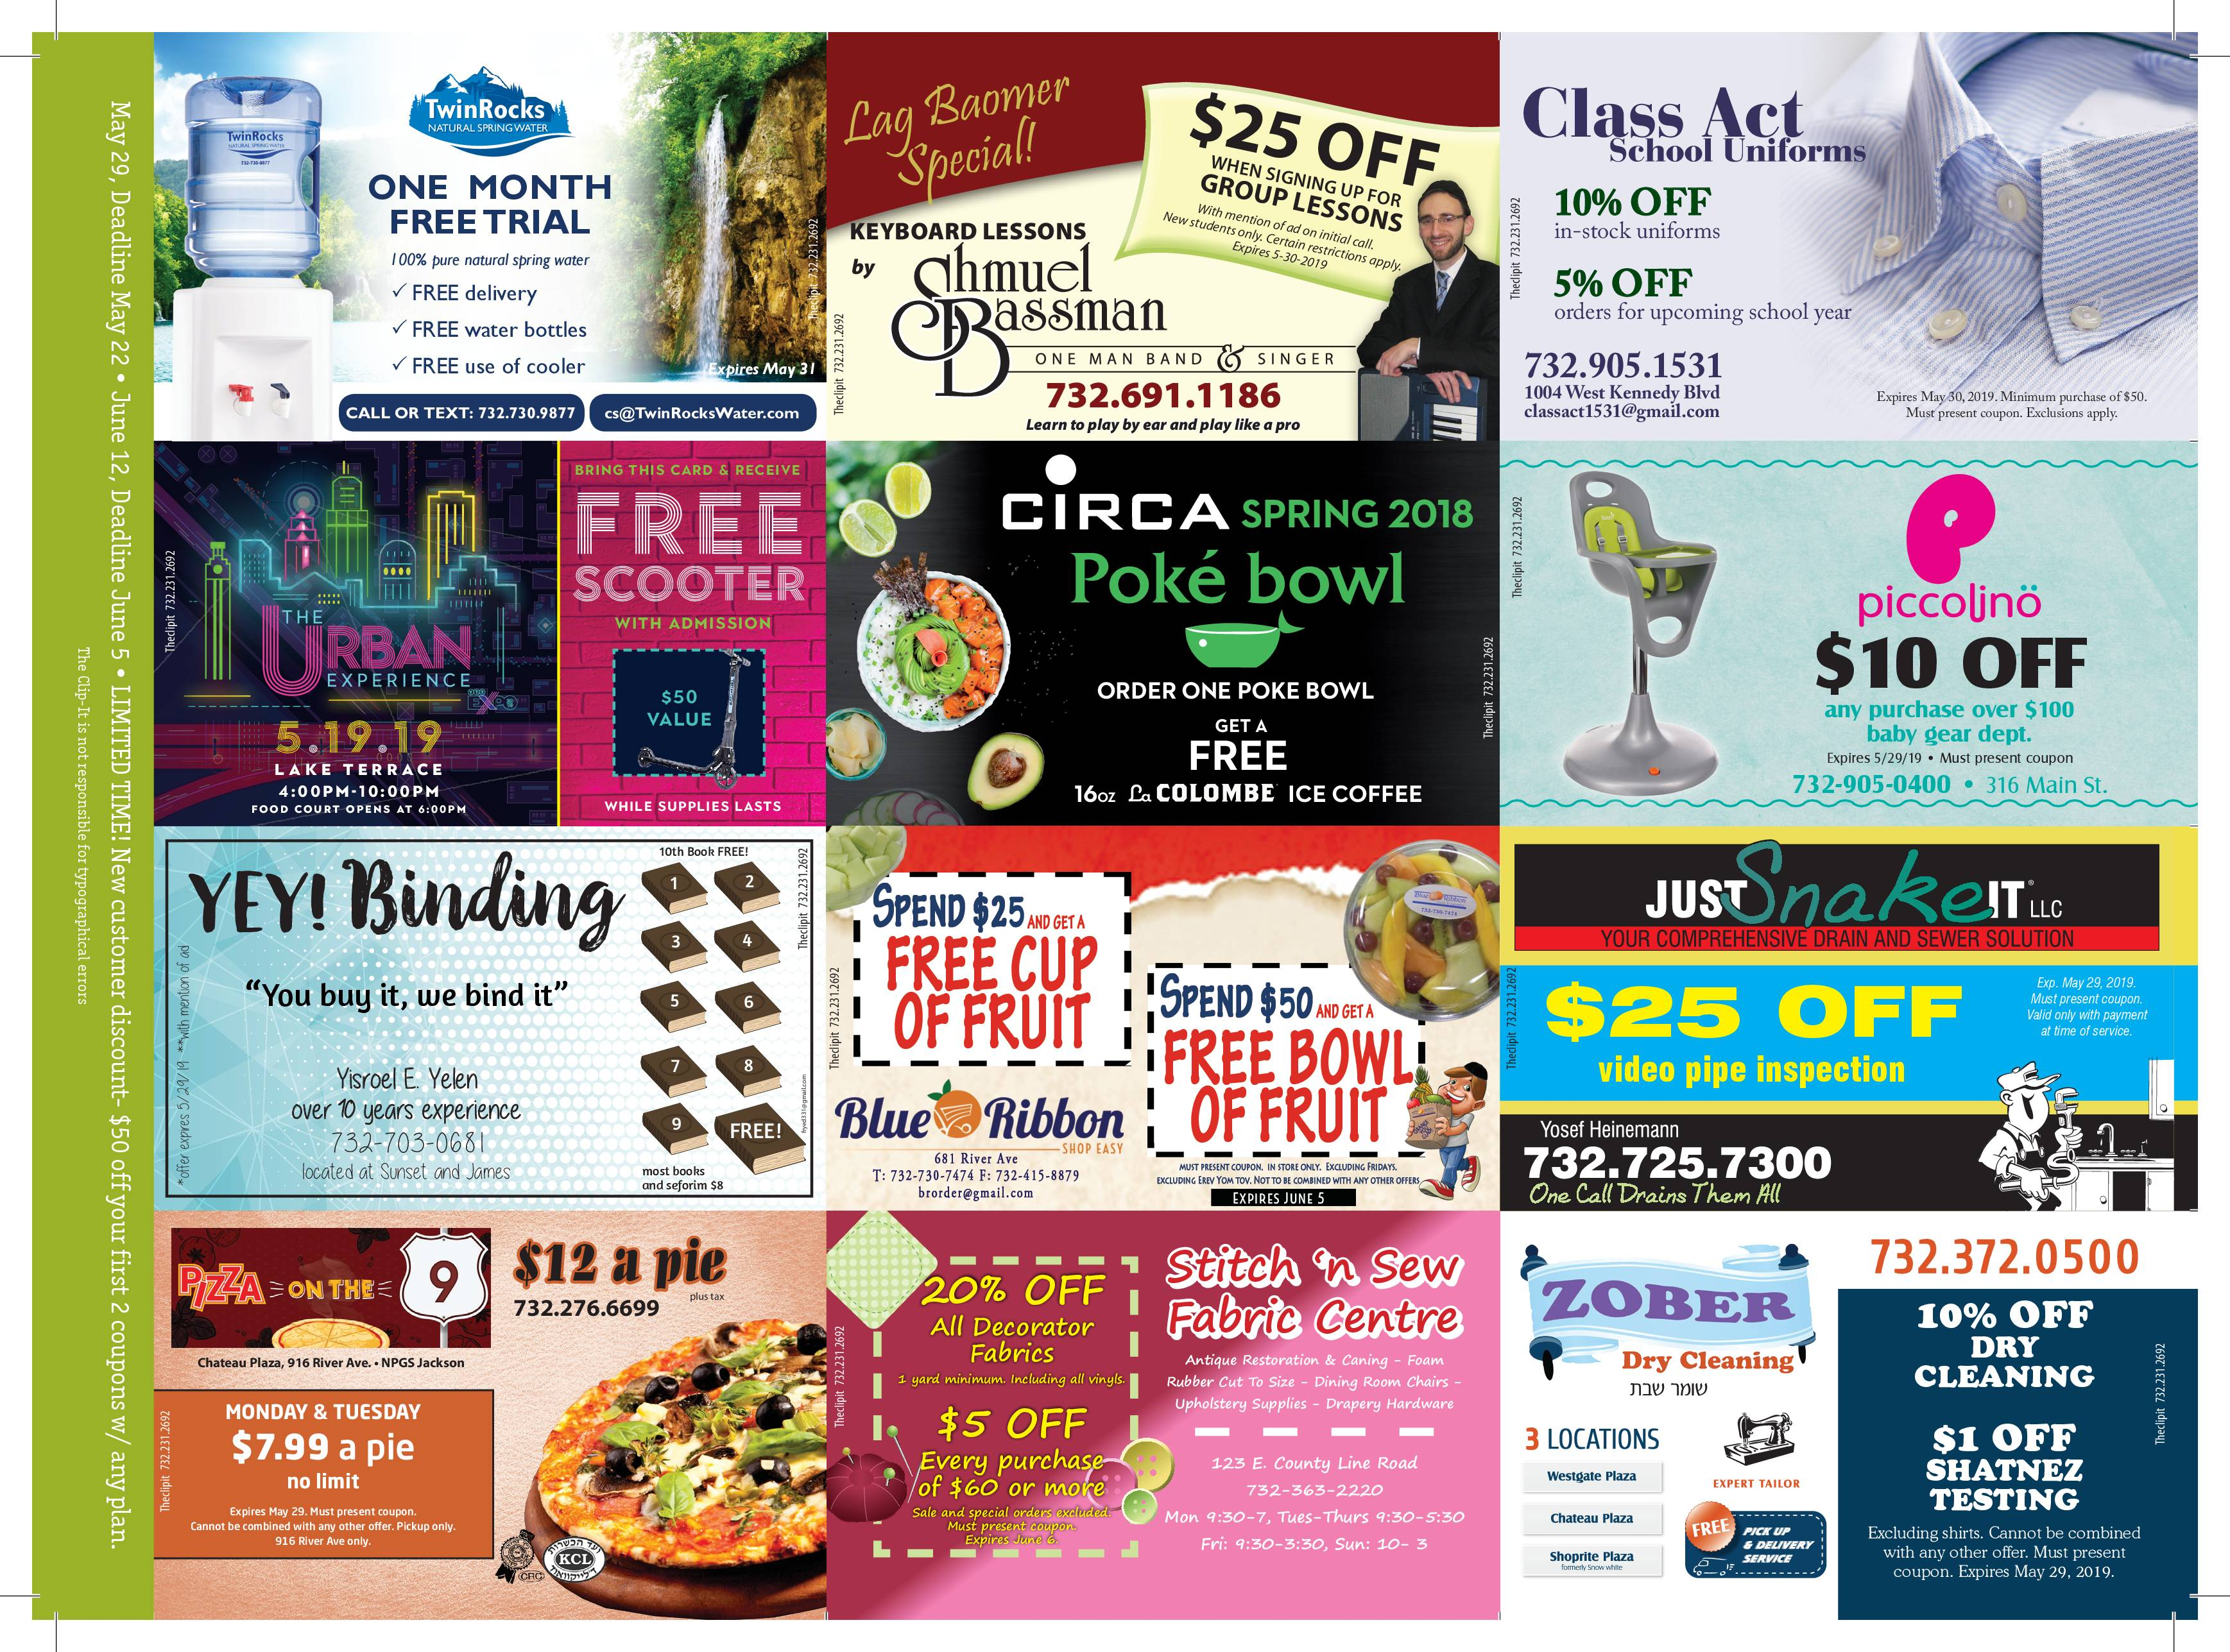 Coupon Card 5/15/19 Front